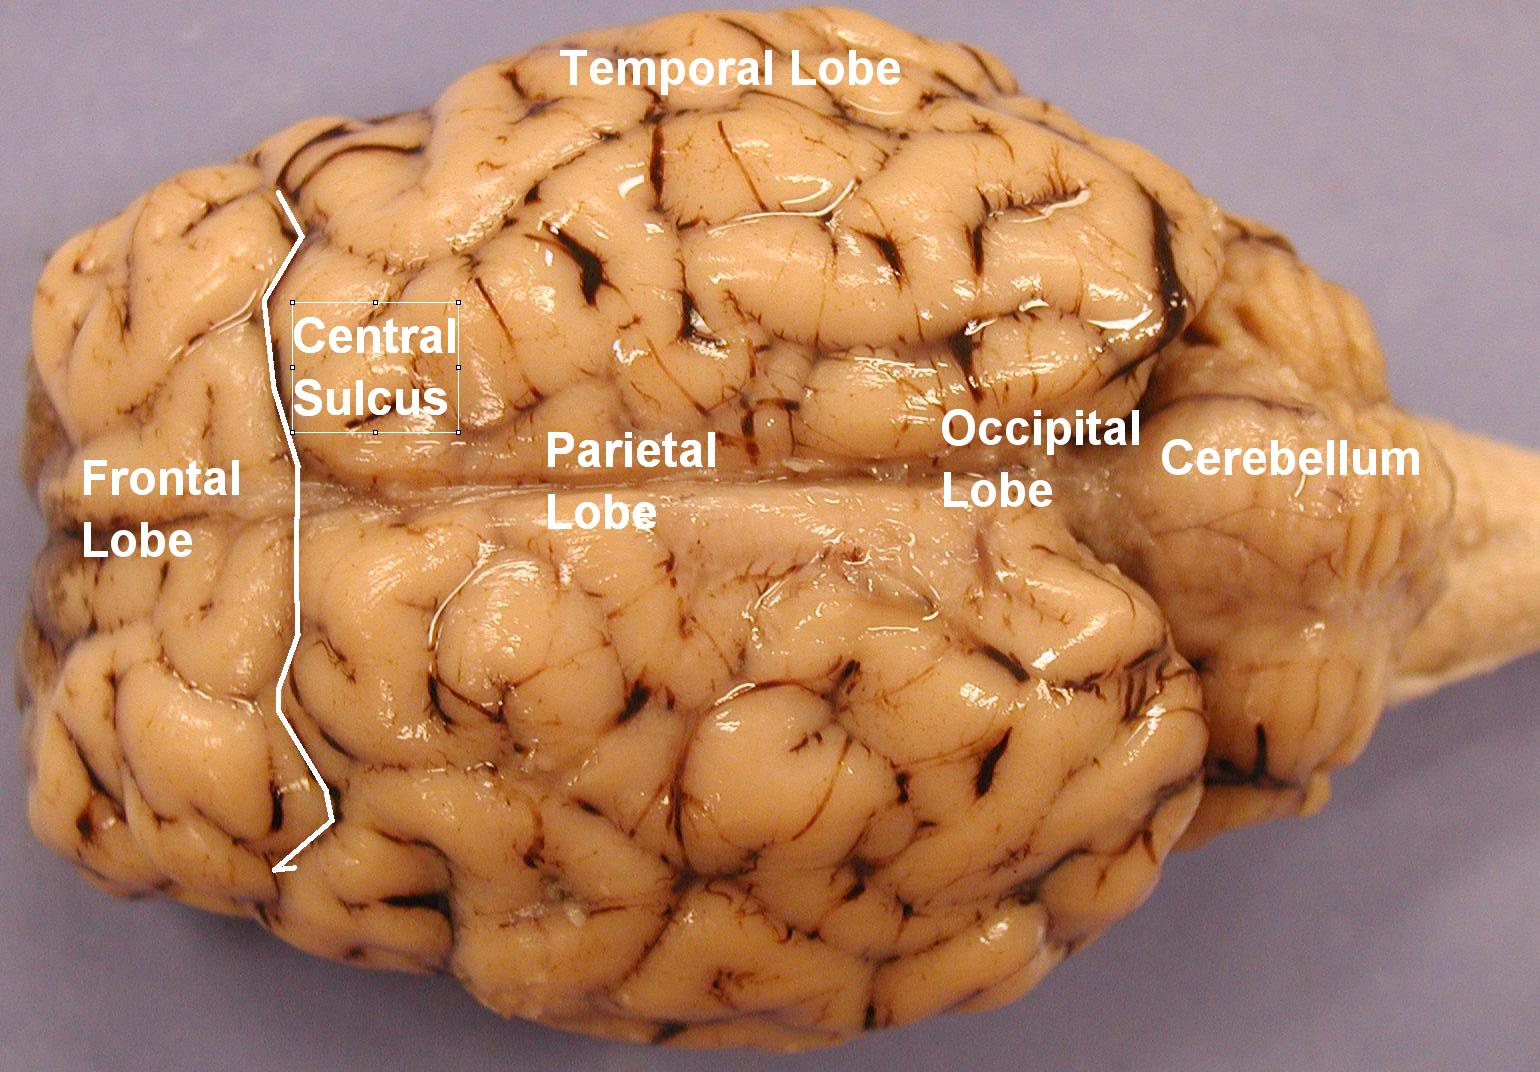 Sheep Brain Diagram Labeled - Sheep Brain Dissection | Anatomy ...